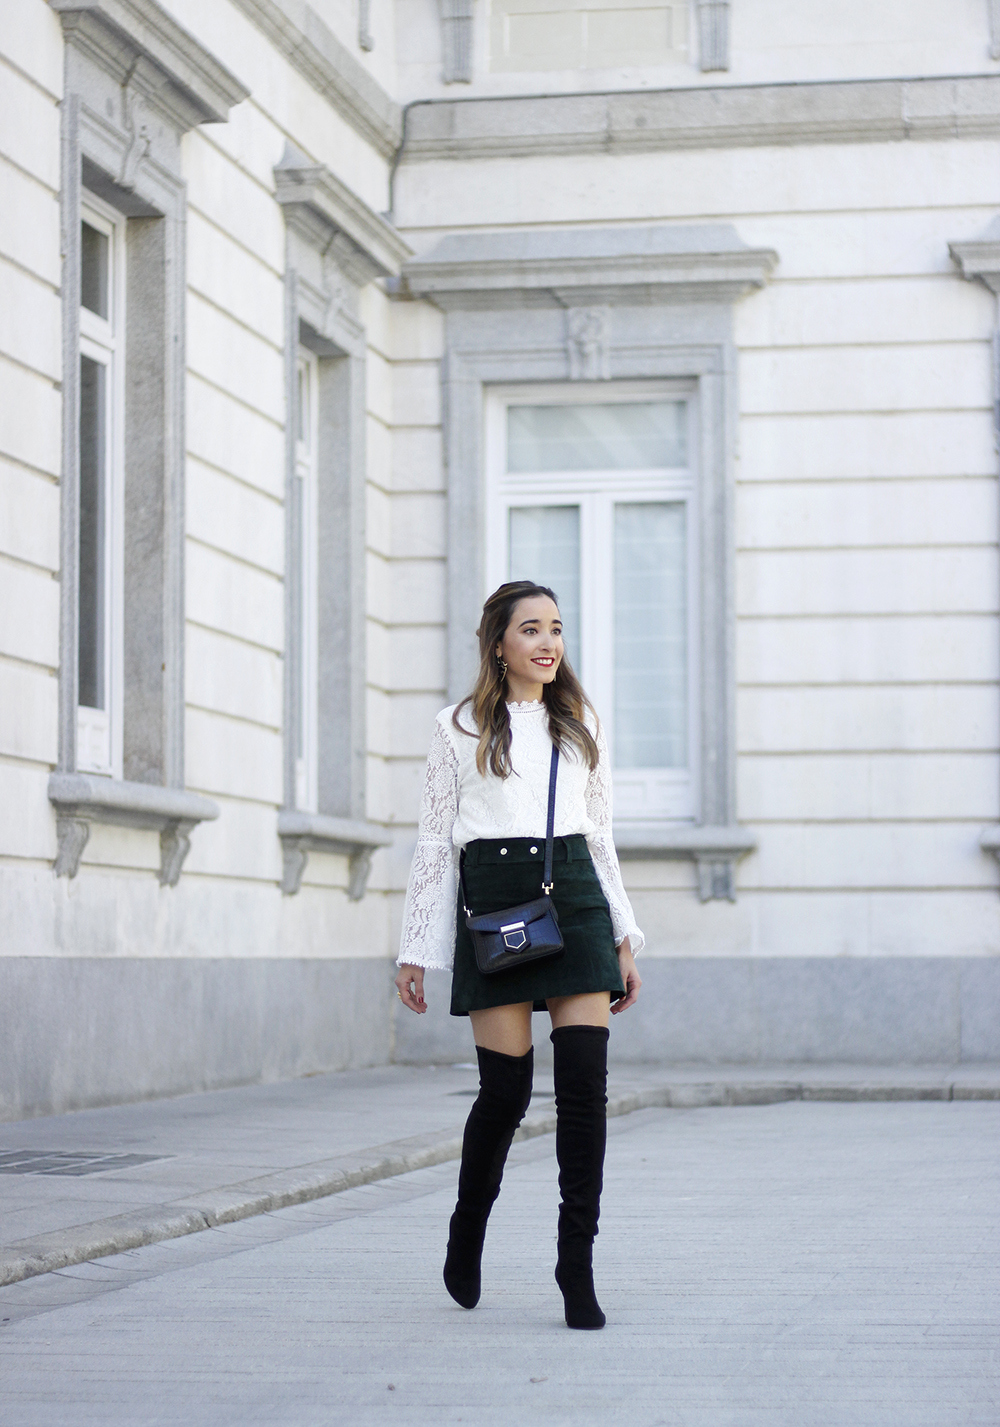 green suede skirt white lace blouse over the knee black boots givenchy bag outfit fashion10